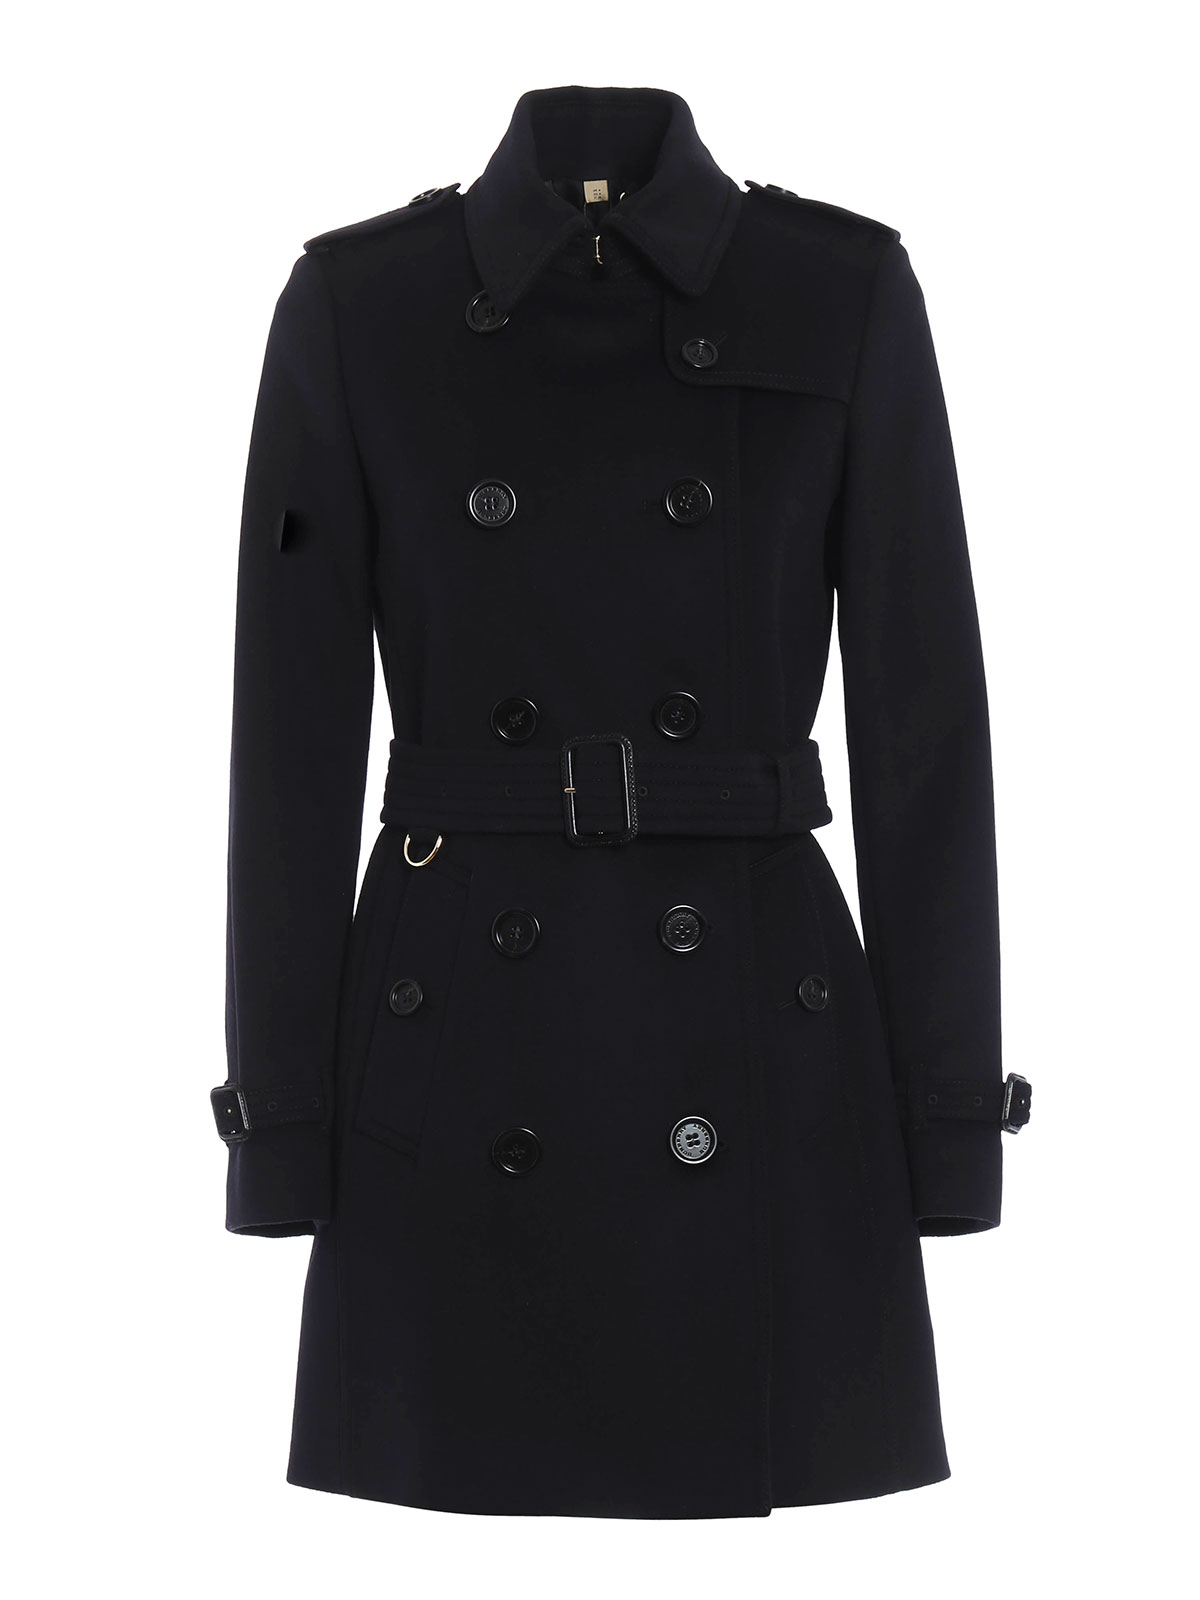 burberry kensington wool trench coat trench coats 4019203 1003. Black Bedroom Furniture Sets. Home Design Ideas